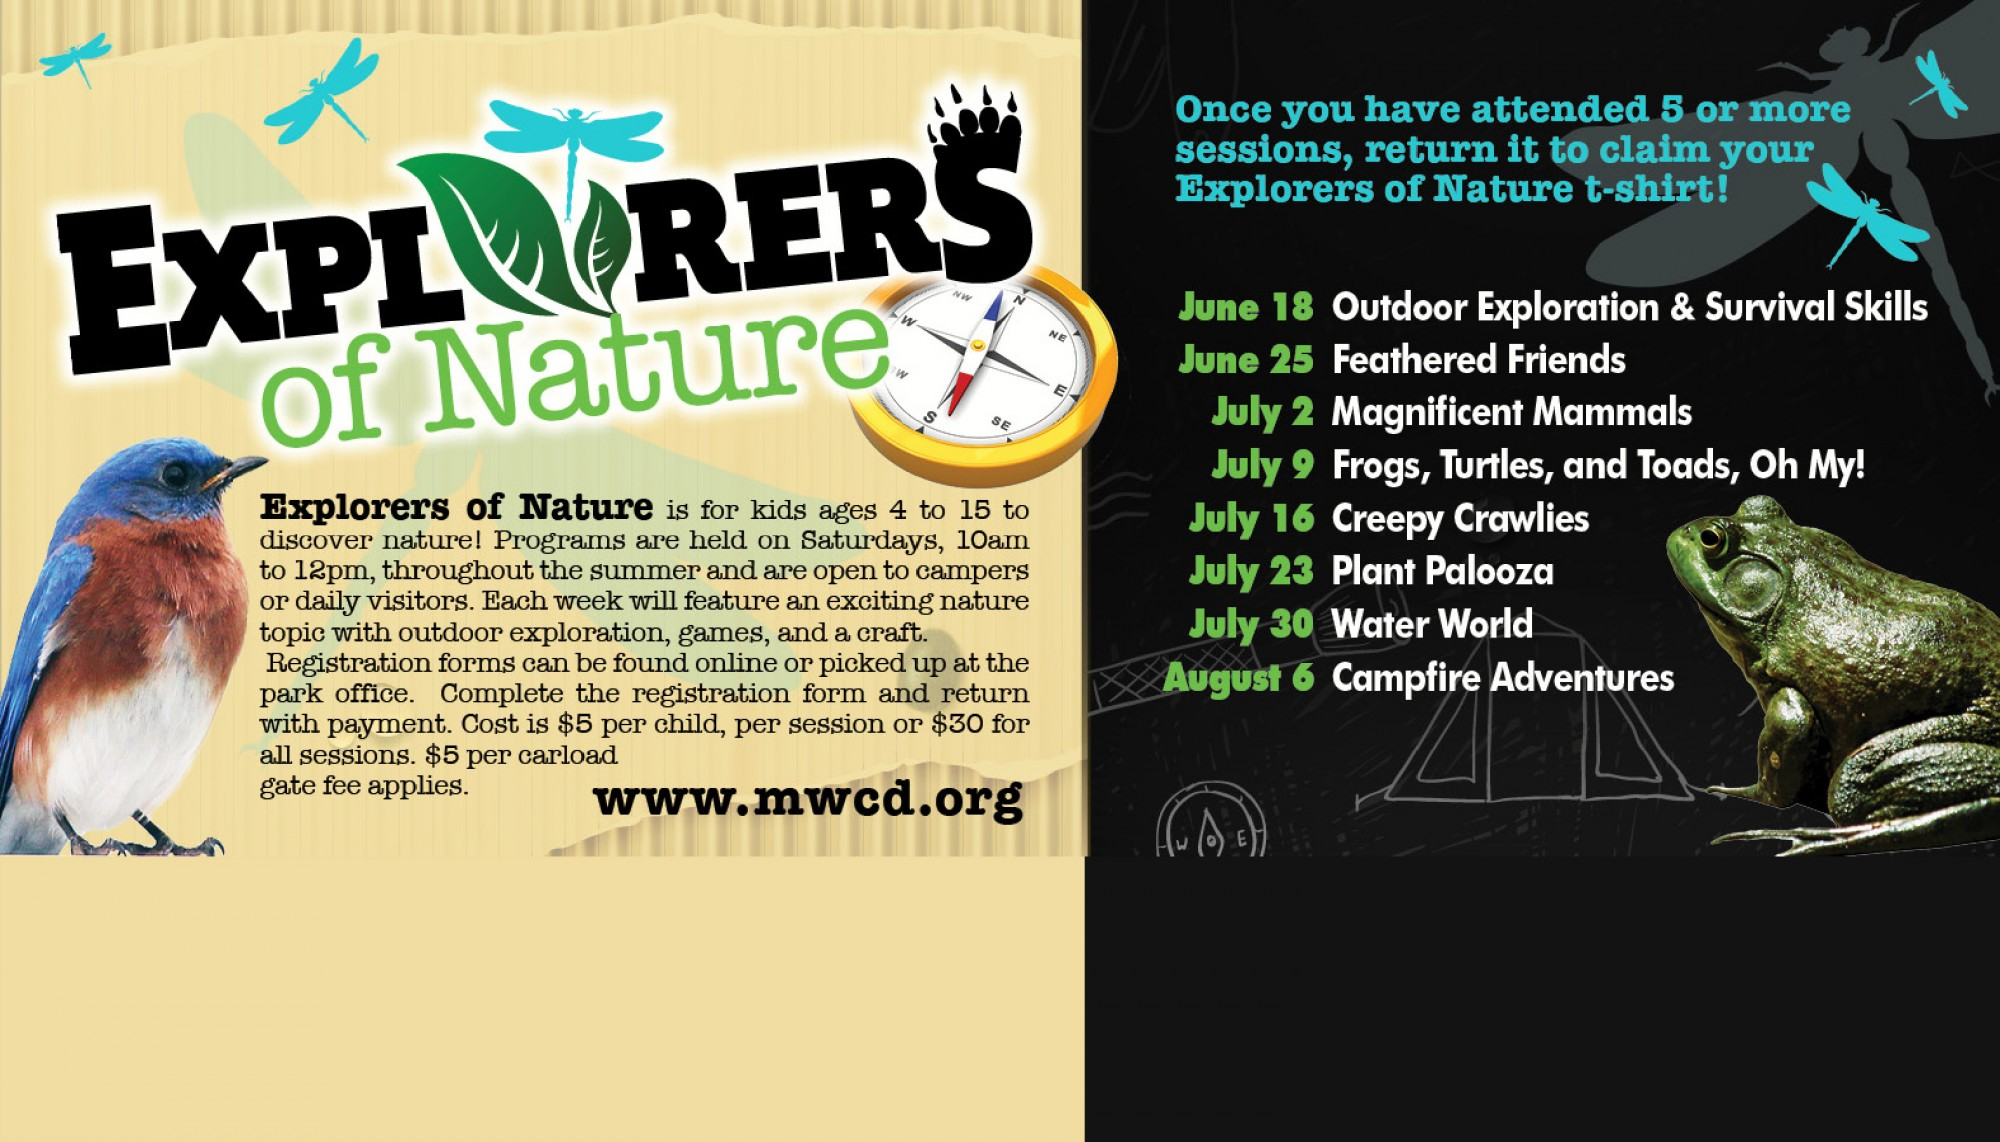 NEW! Explorers of Nature Program